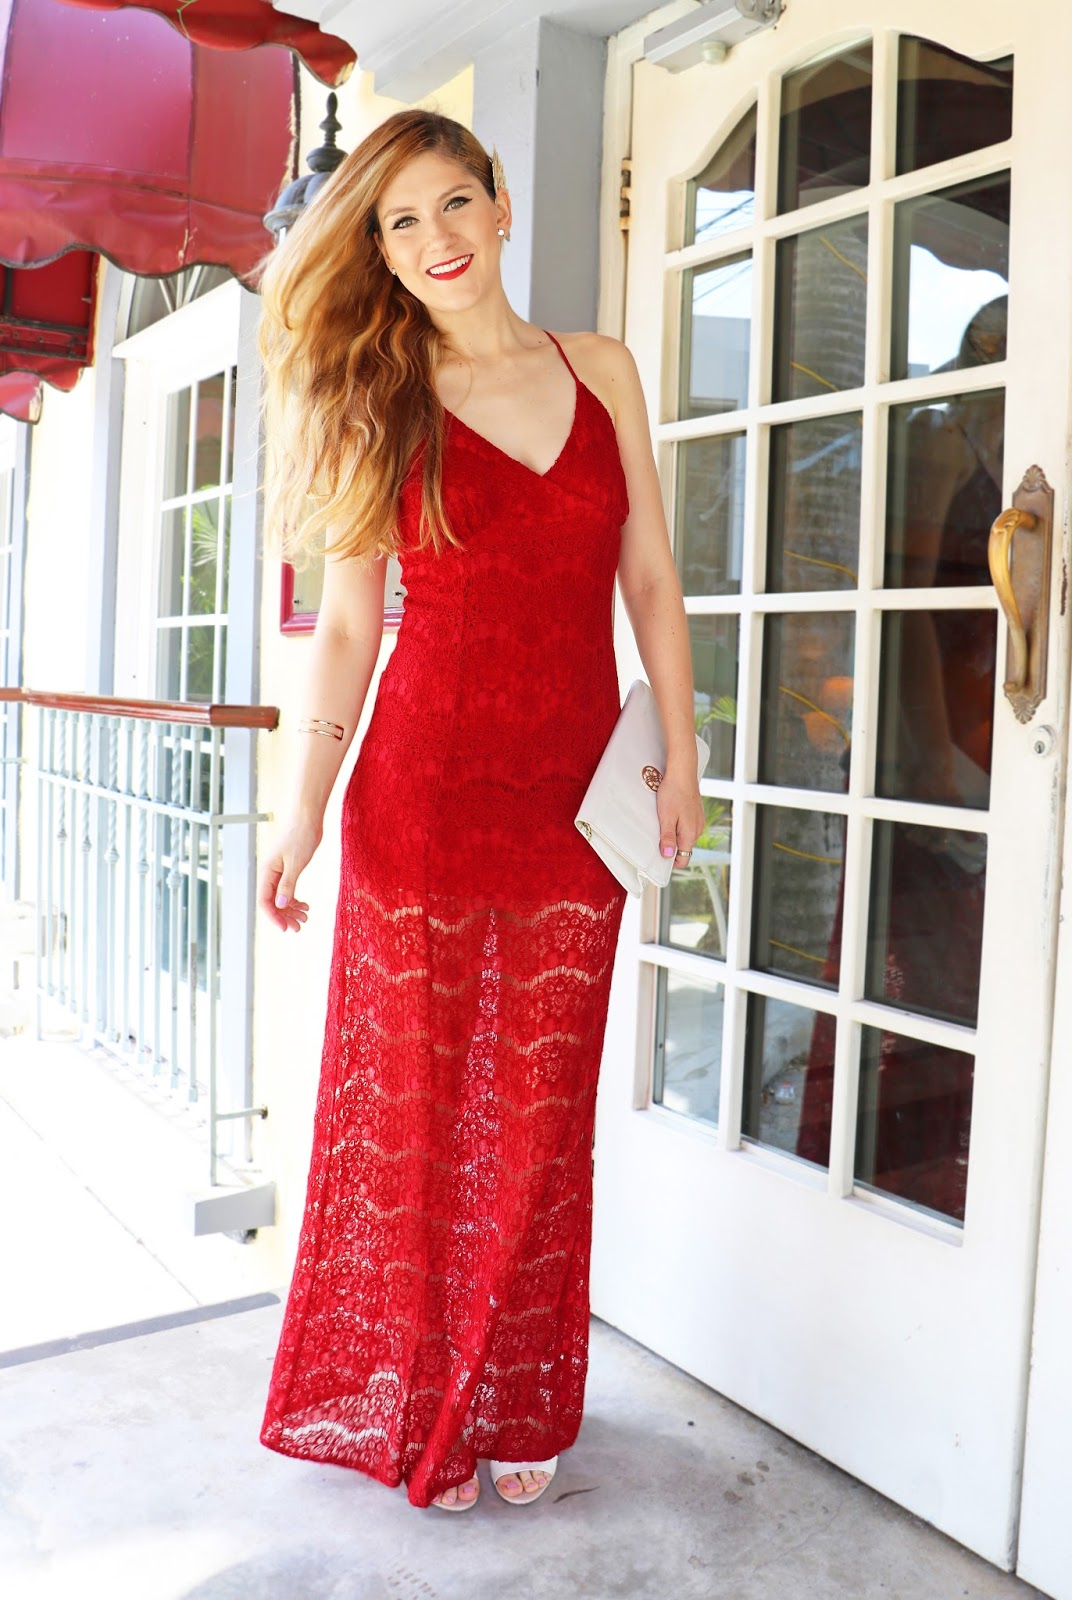 This red lace dress is perfect for Valentine's Day!